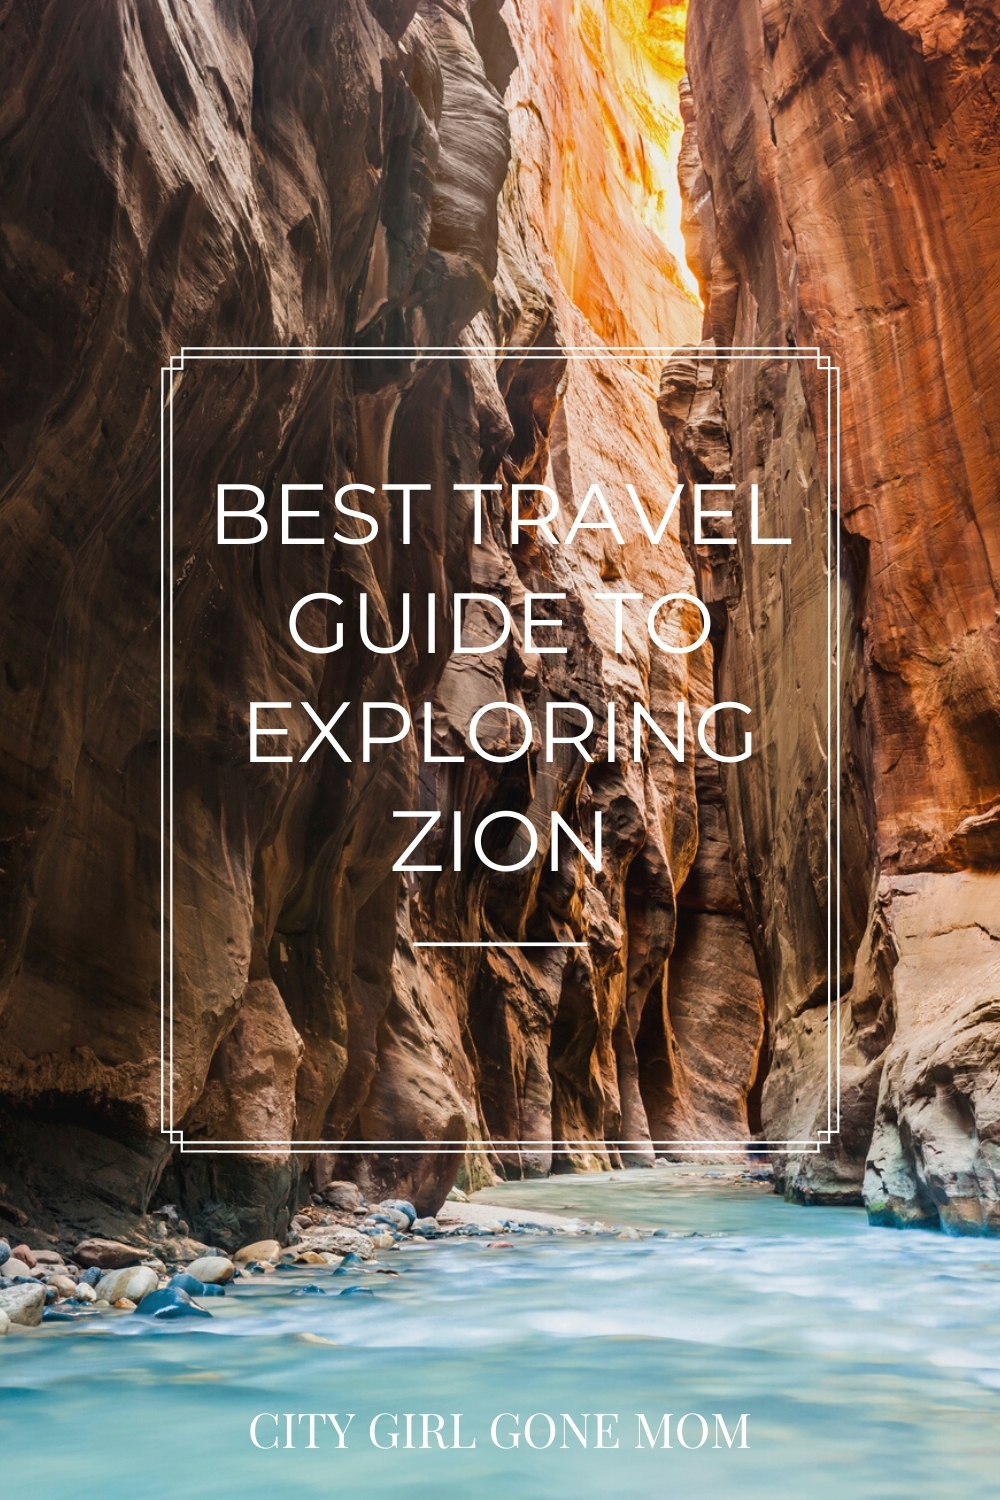 zion camping guide